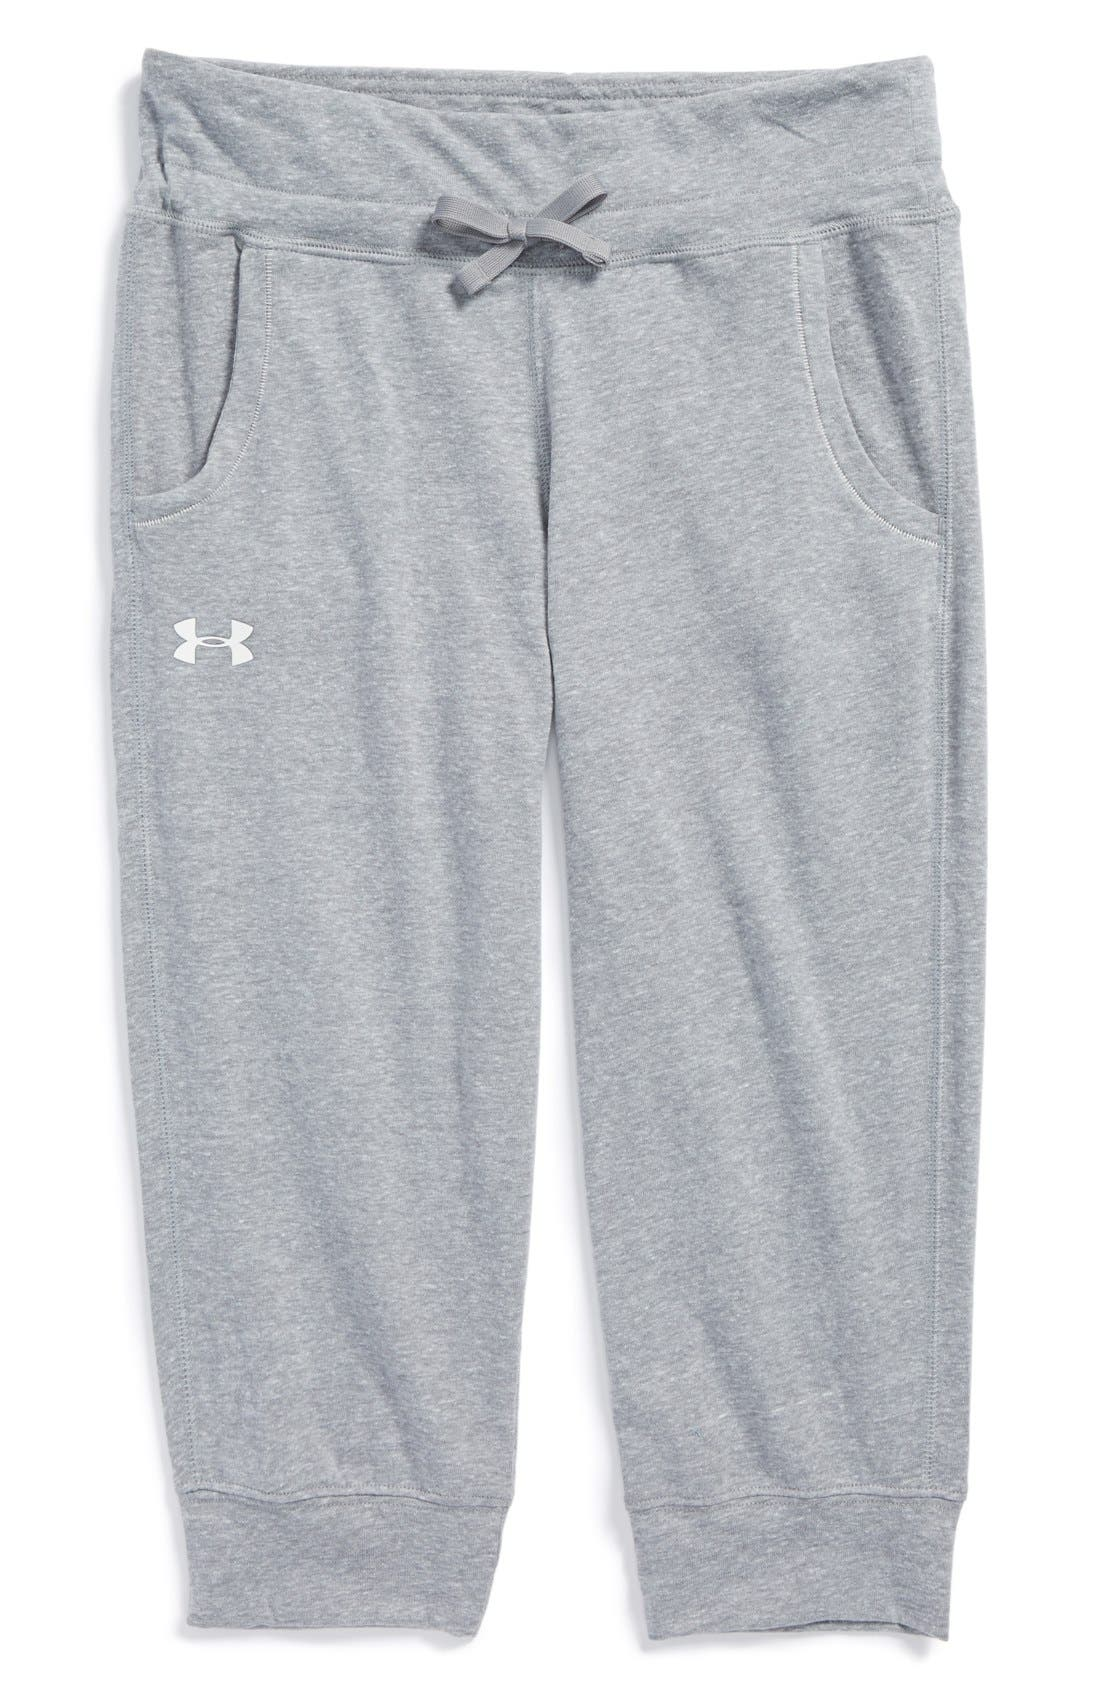 Alternate Image 1 Selected - Under Armour Capri Sweatpants (Big Girls)